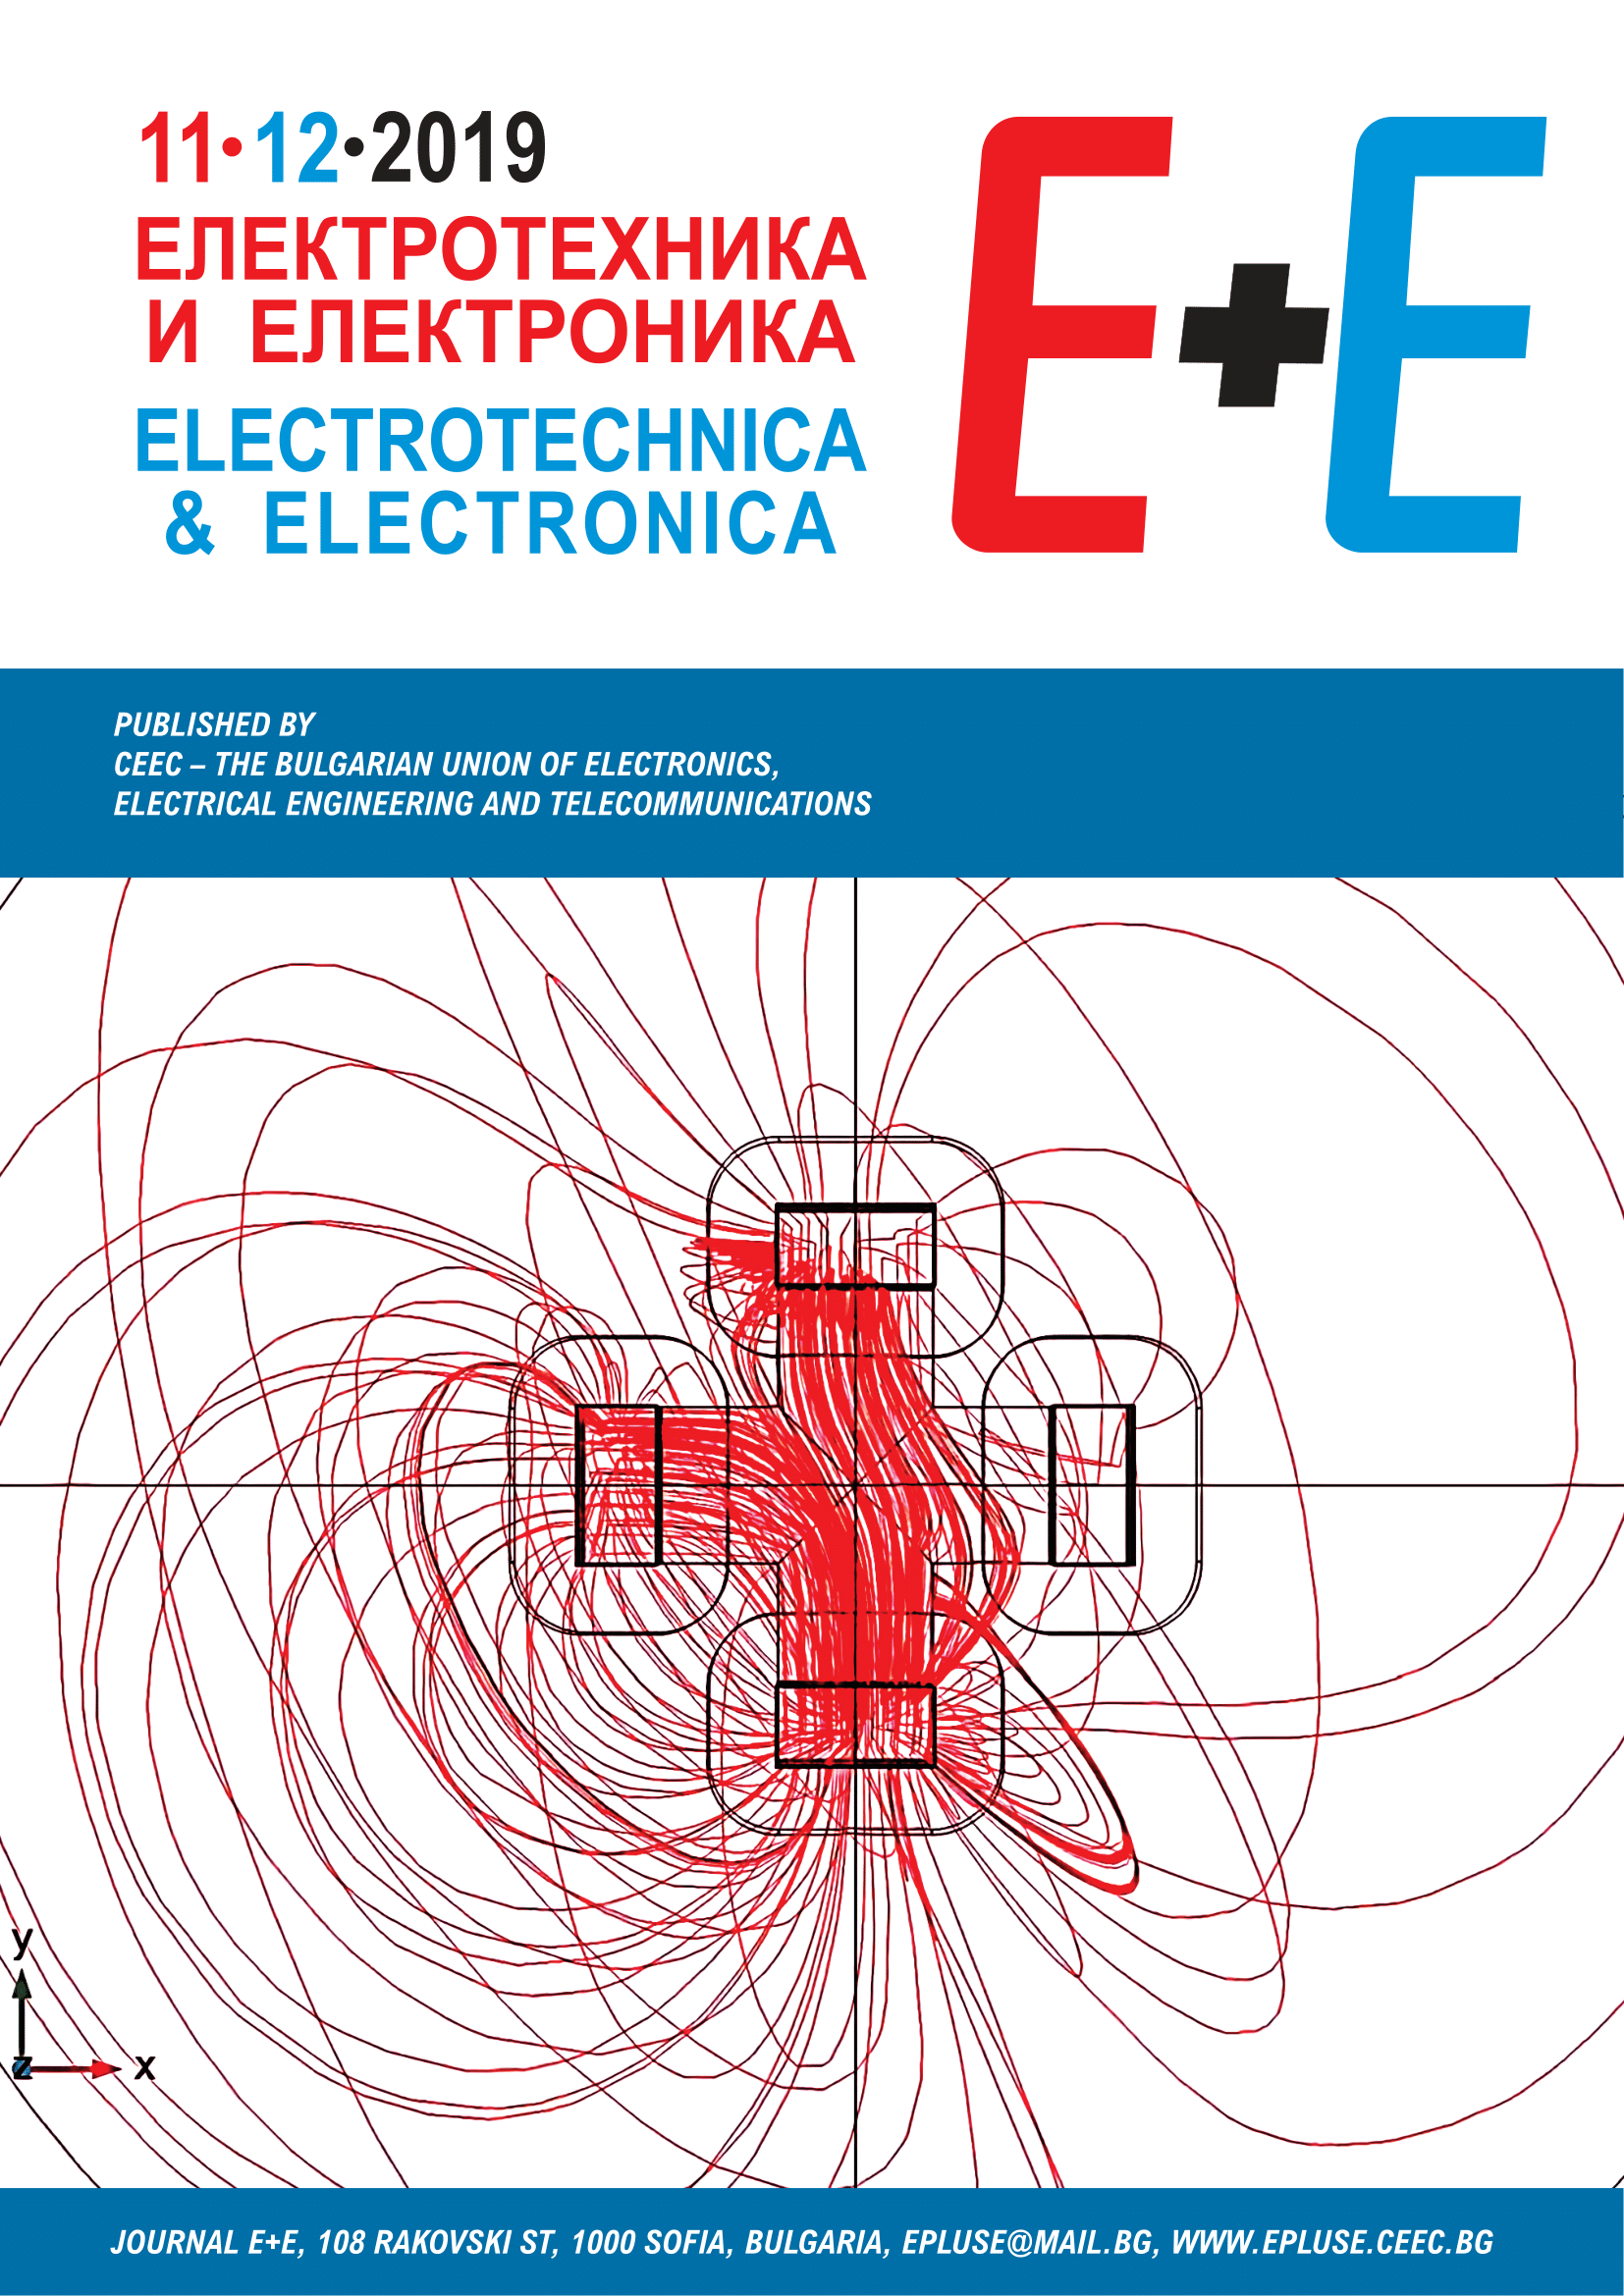 Journal E+E latest issue cover page